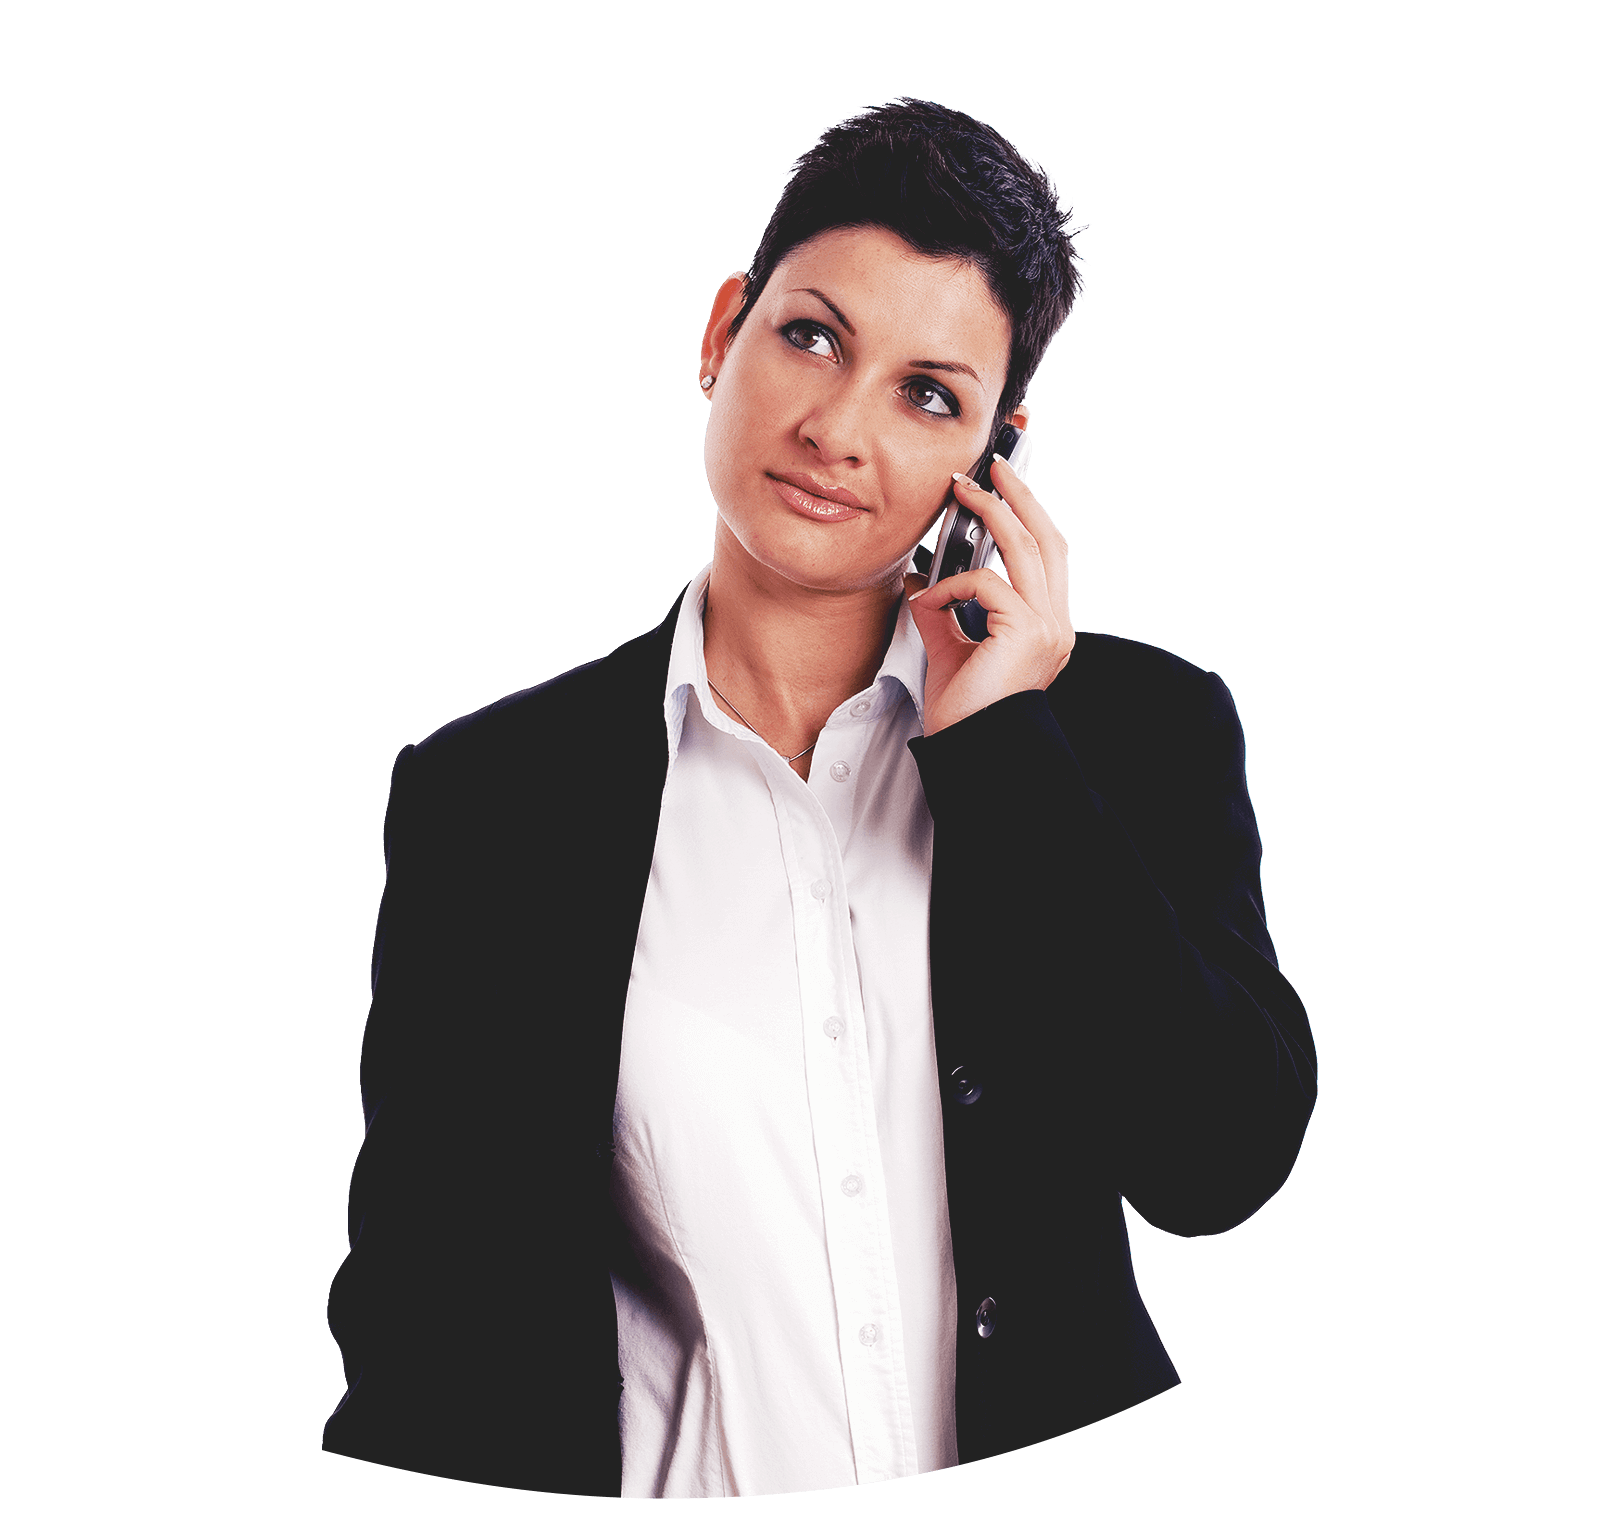 Woman with short black hair in a black suit jacket and white shirt, talking on her mobile phone.